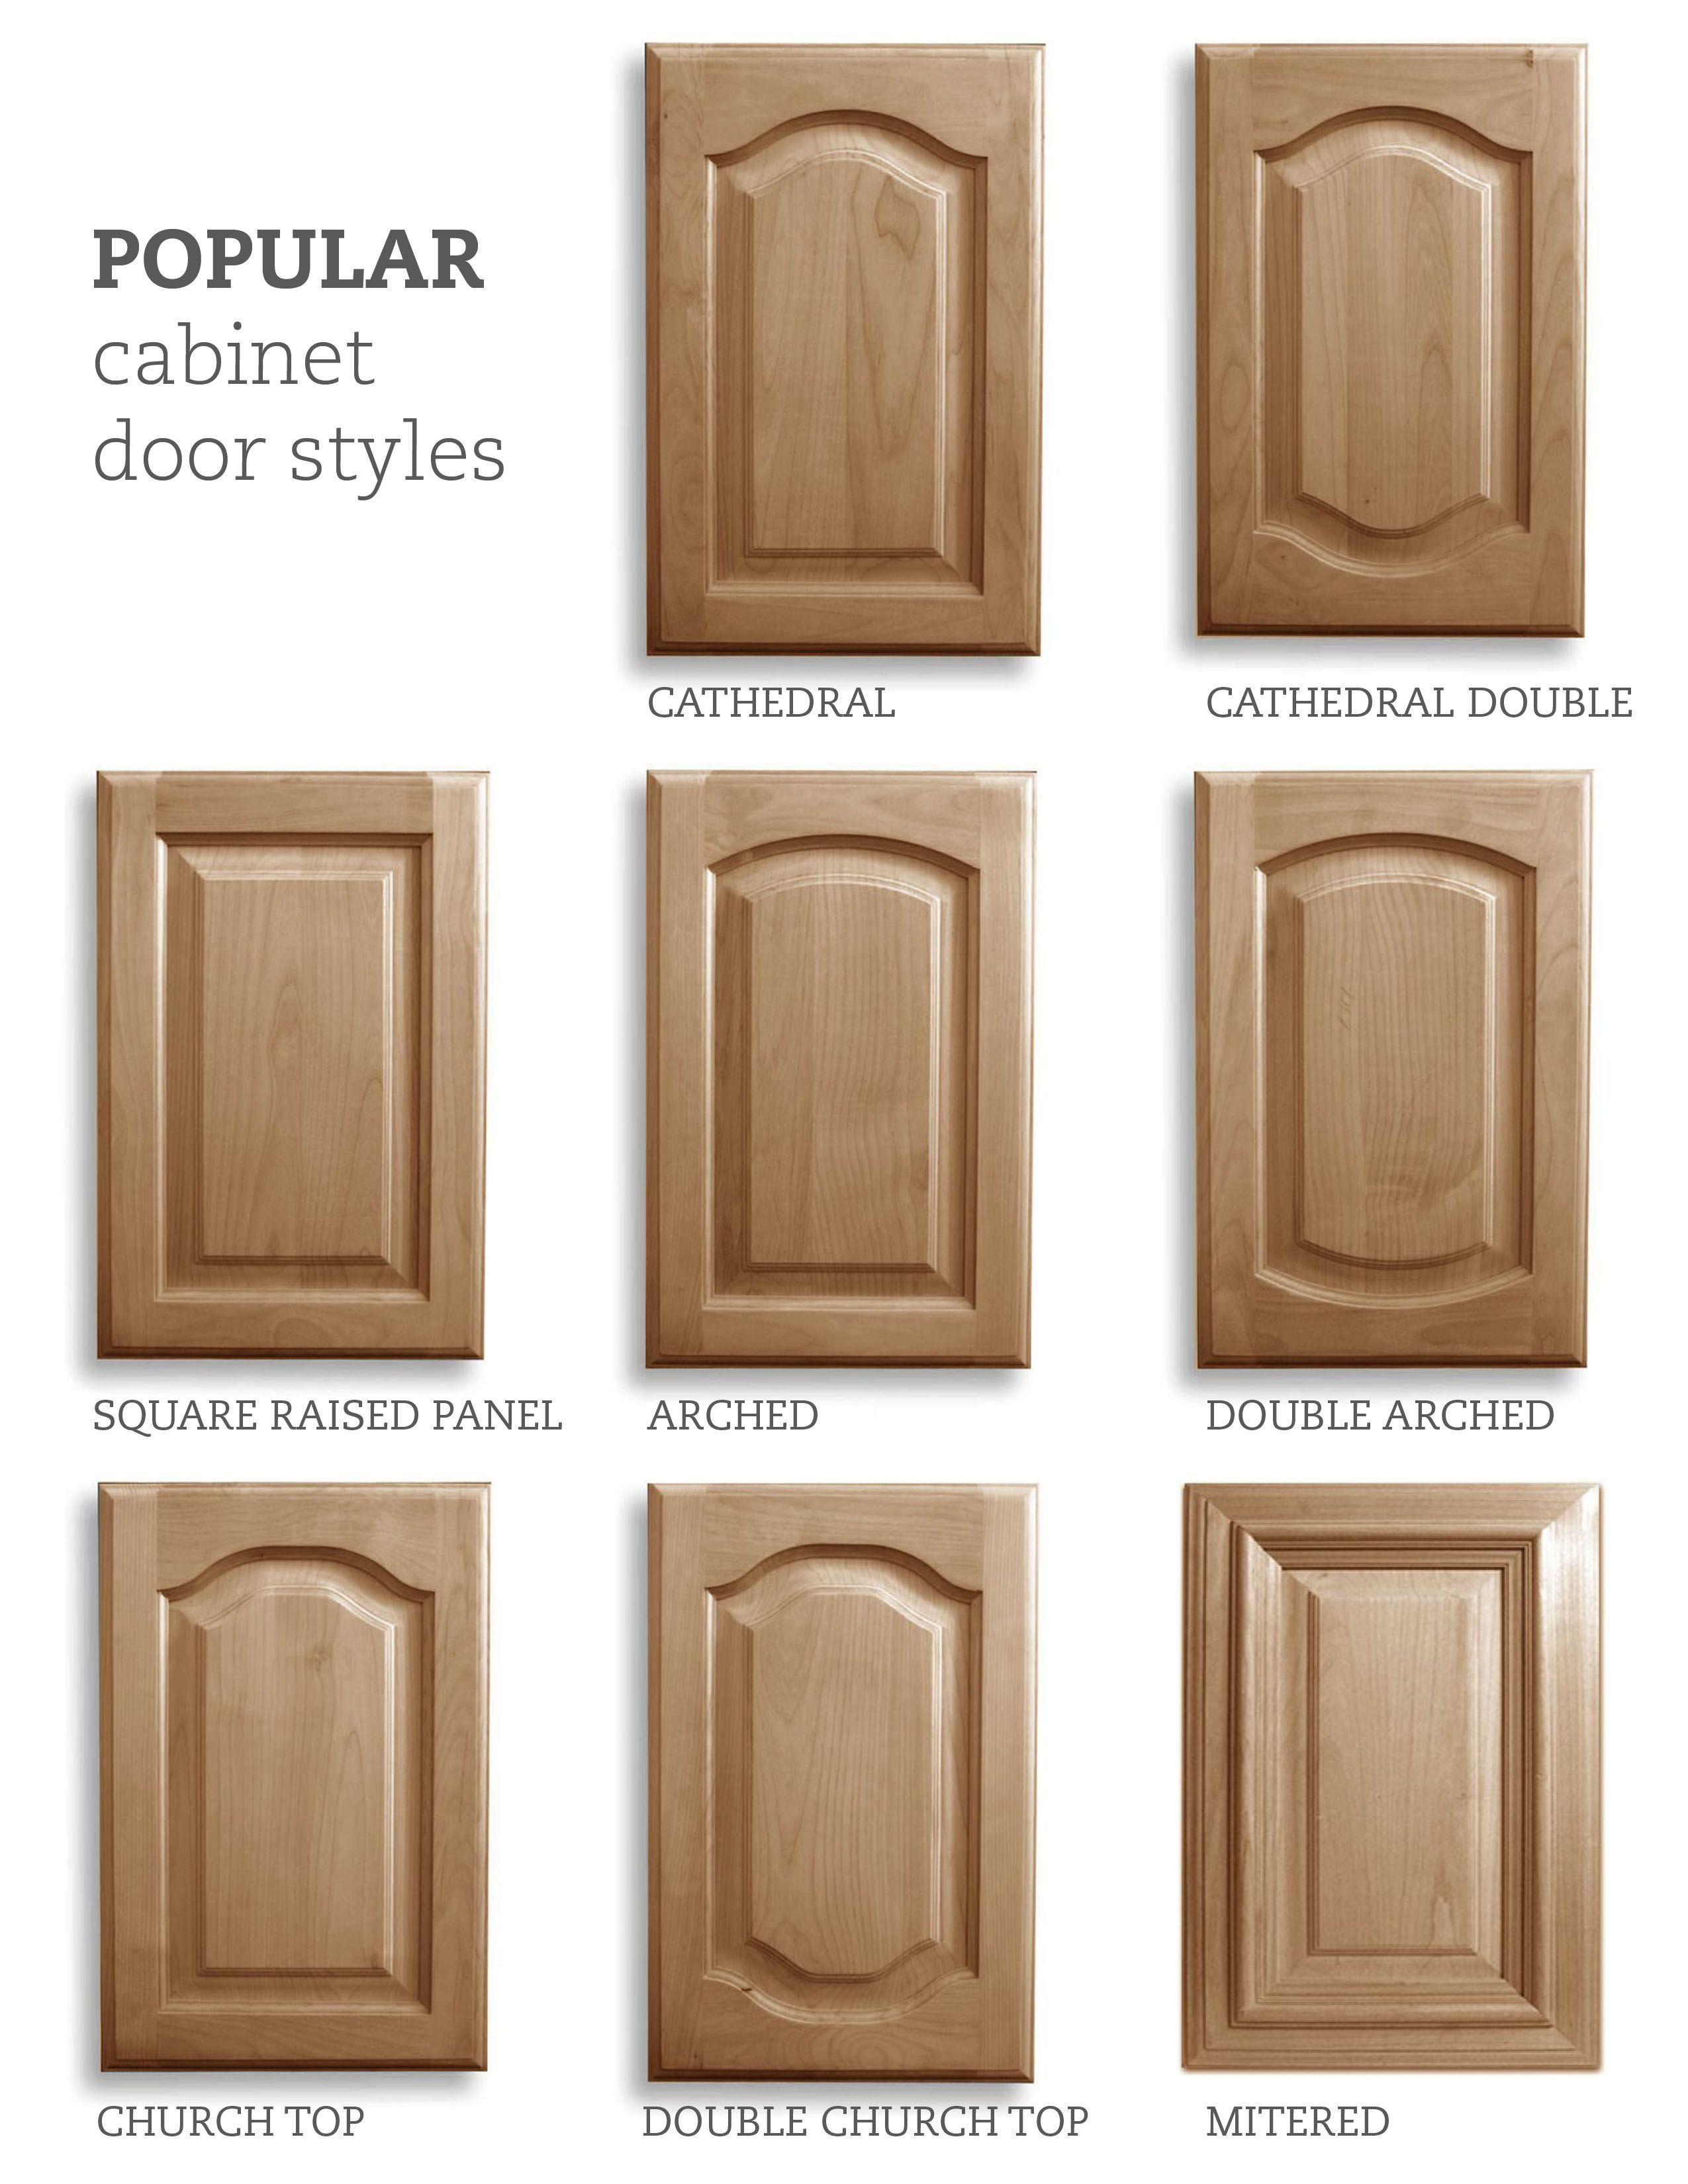 Cathedral Cabinet Doors Best Of Popular Cabinet Door Styles Cathedral Cathedral Double